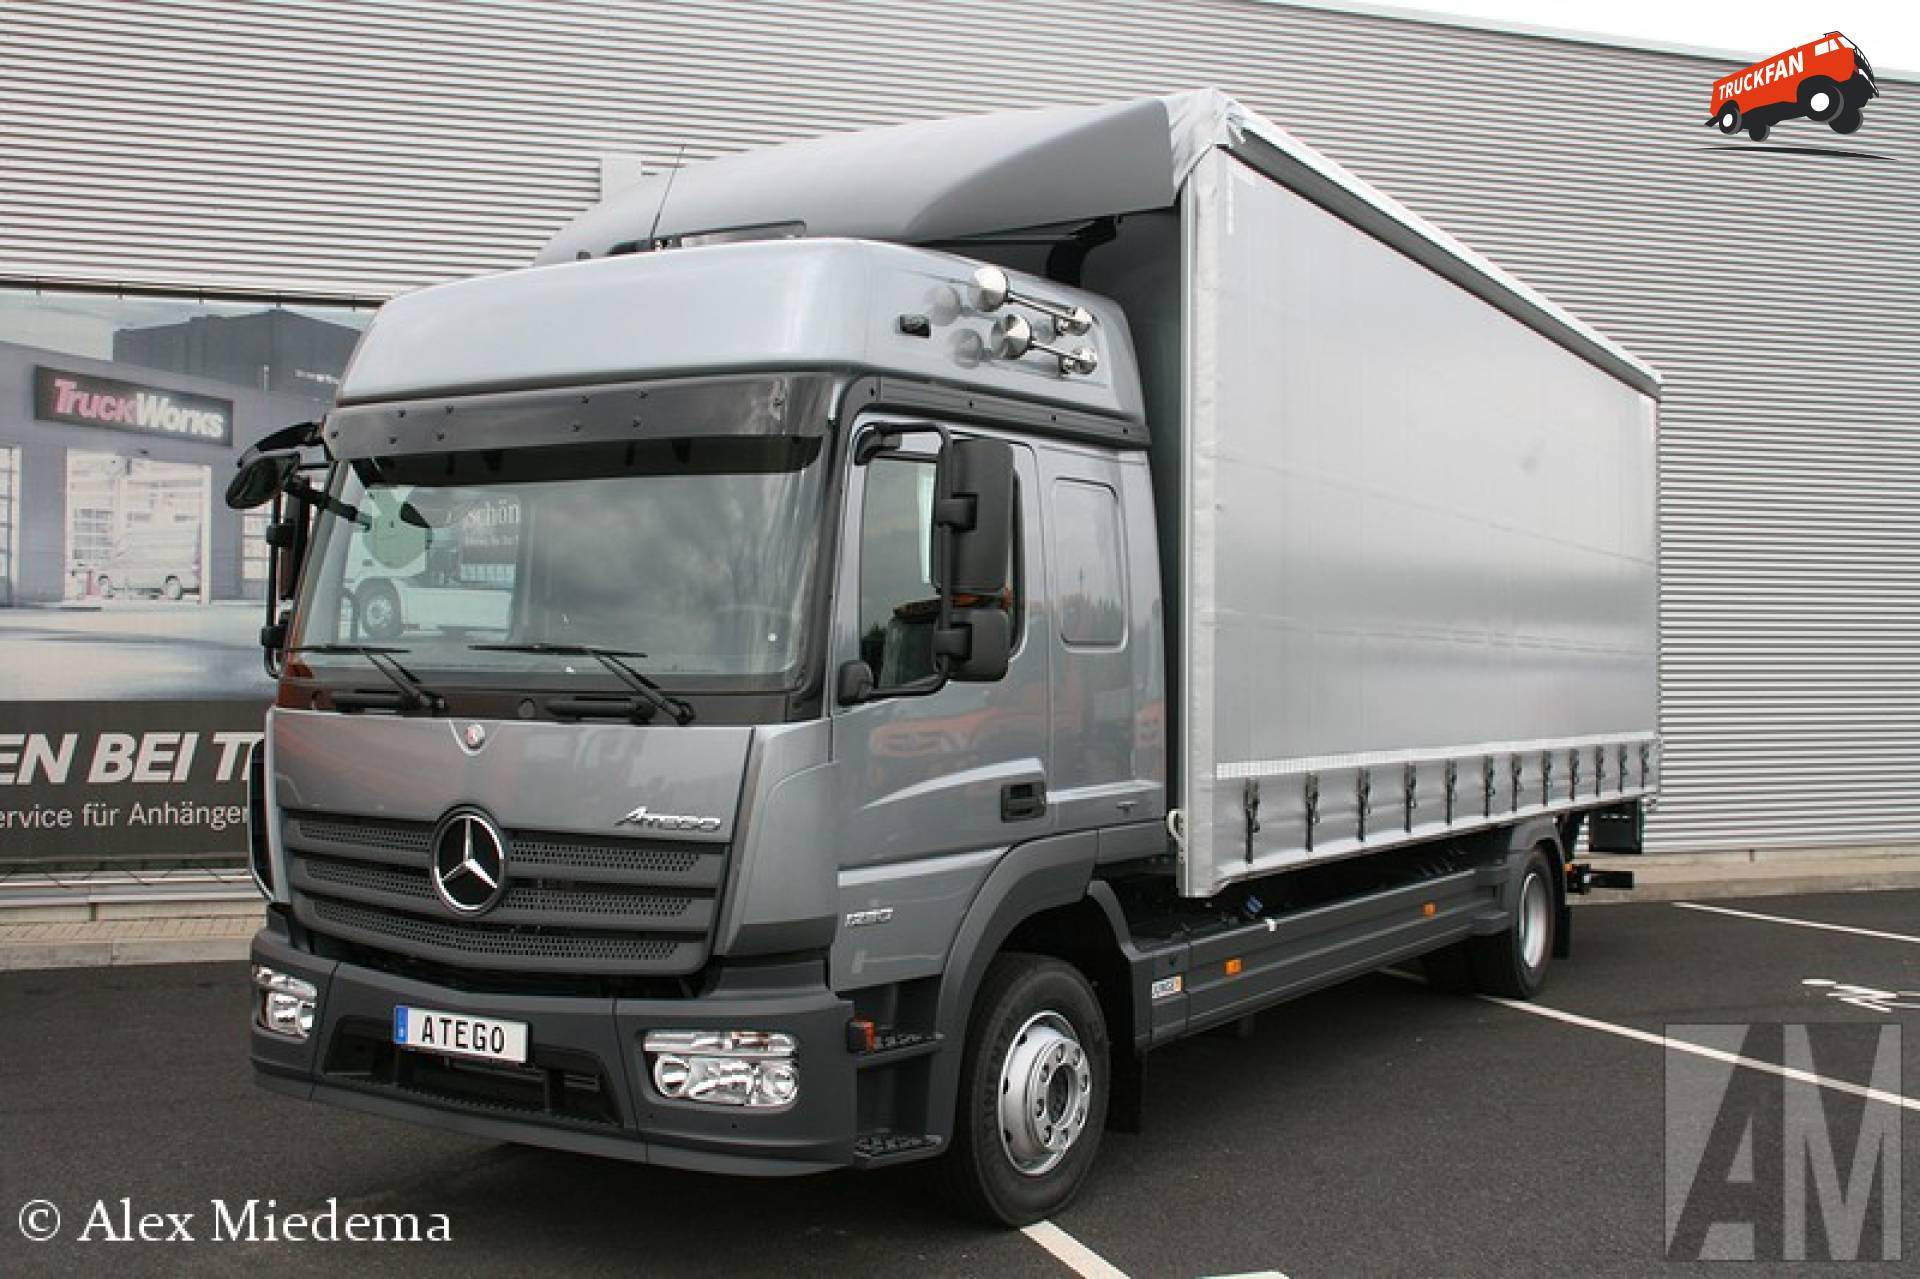 foto mercedes benz atego mp4 van mercedes benz eschweiler aachen. Black Bedroom Furniture Sets. Home Design Ideas